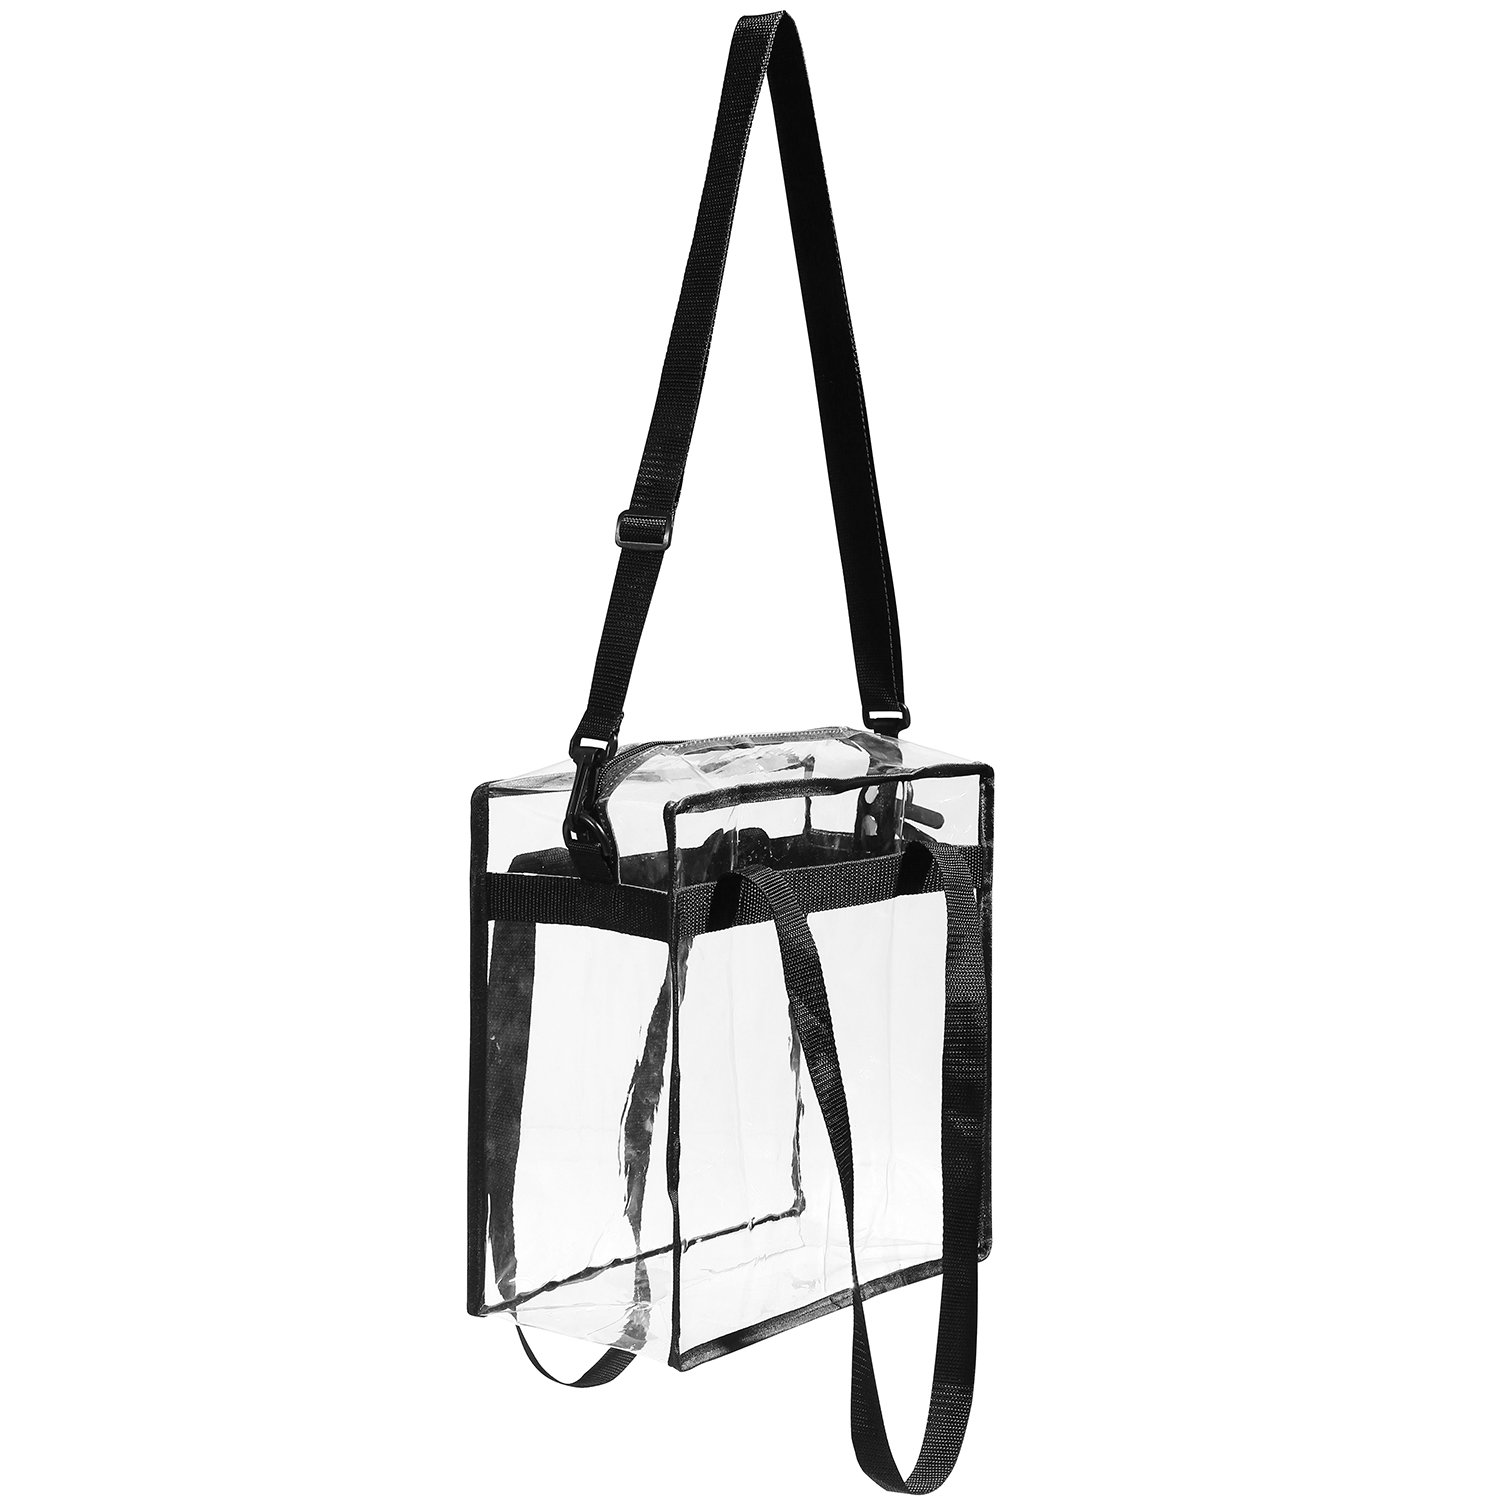 "Clear Bags NFL & PGA Stadium Approved - The Clear Tote Bag with Zipper Closure is Perfect for Work, Sports Games.Cross-Body Messenger Shoulder Bag w Adjustable Strap -12"" X 12"" X 6"" (Two Bag) by BAGAIL (Image #7)"